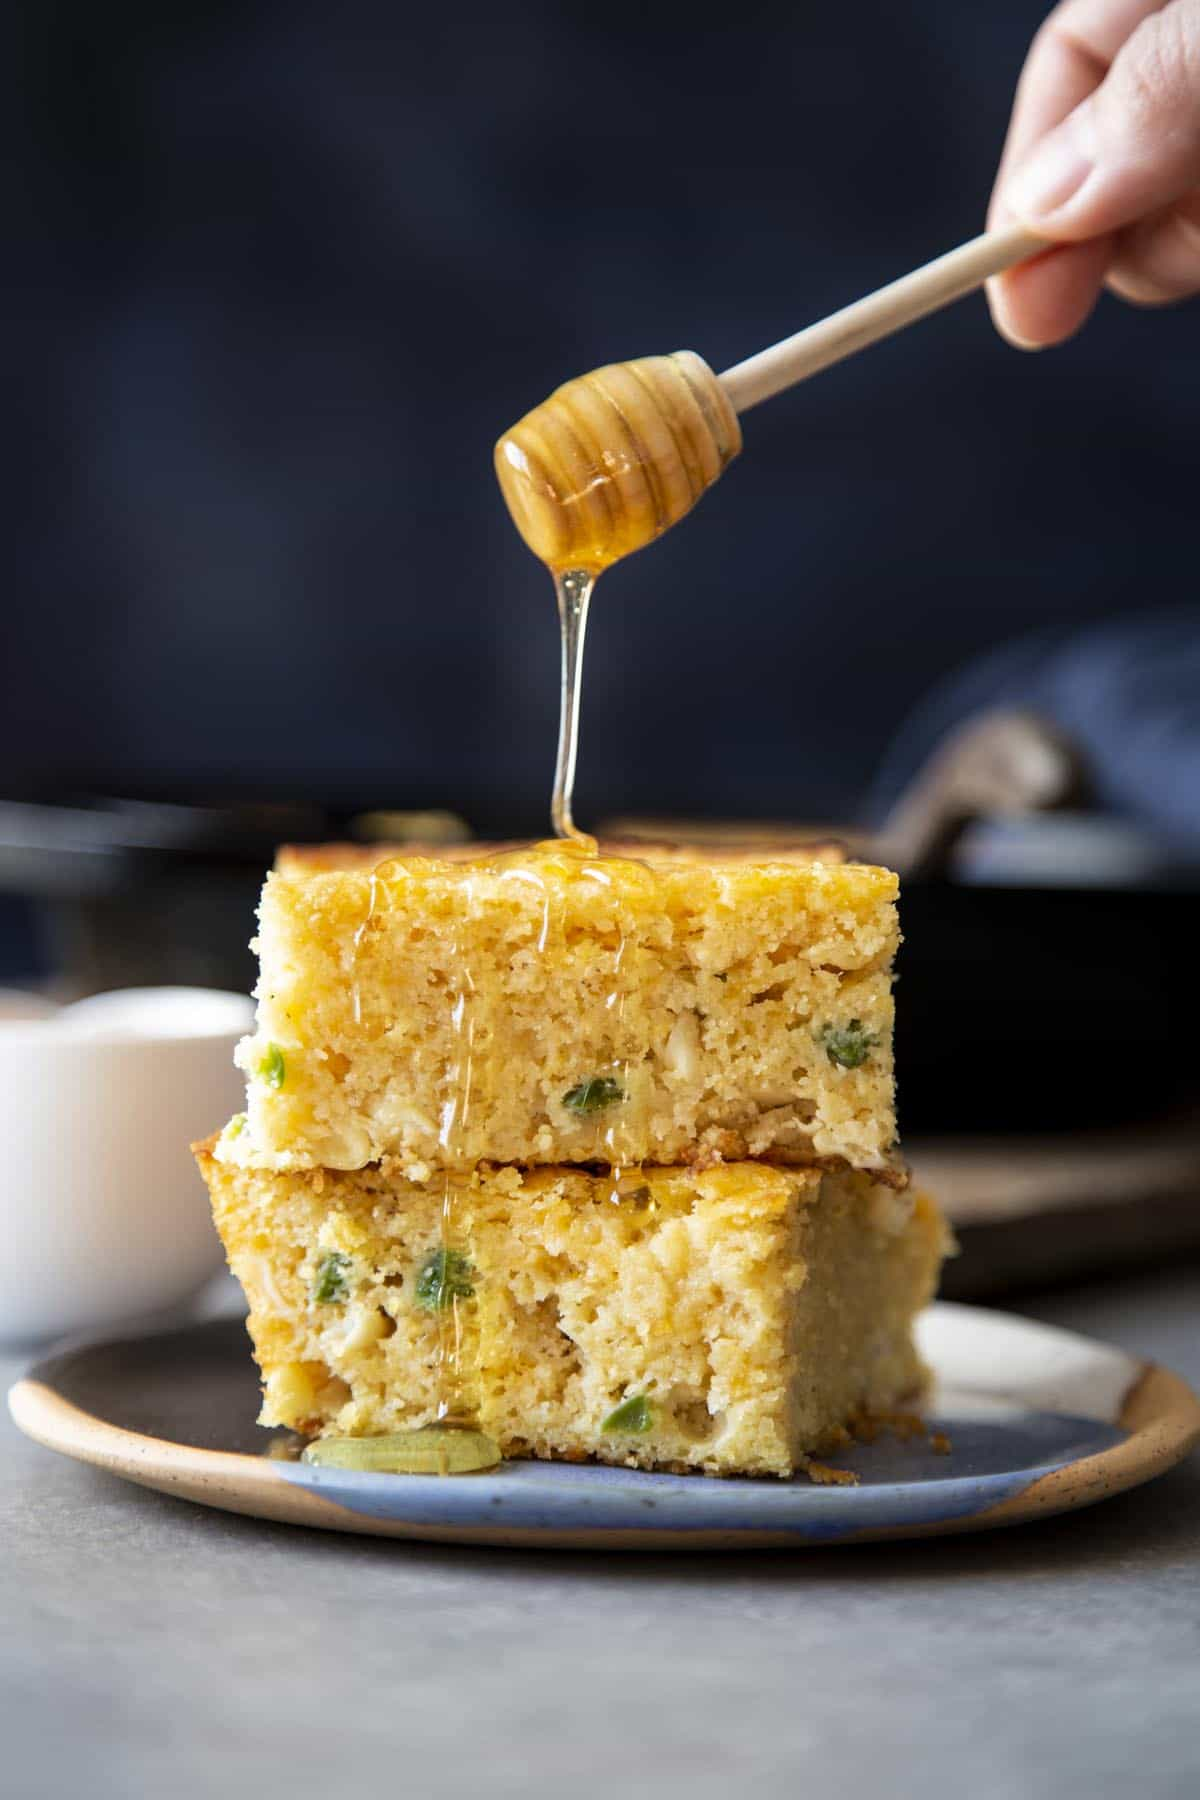 A stack of 2 cornbread being drizzled with honey.